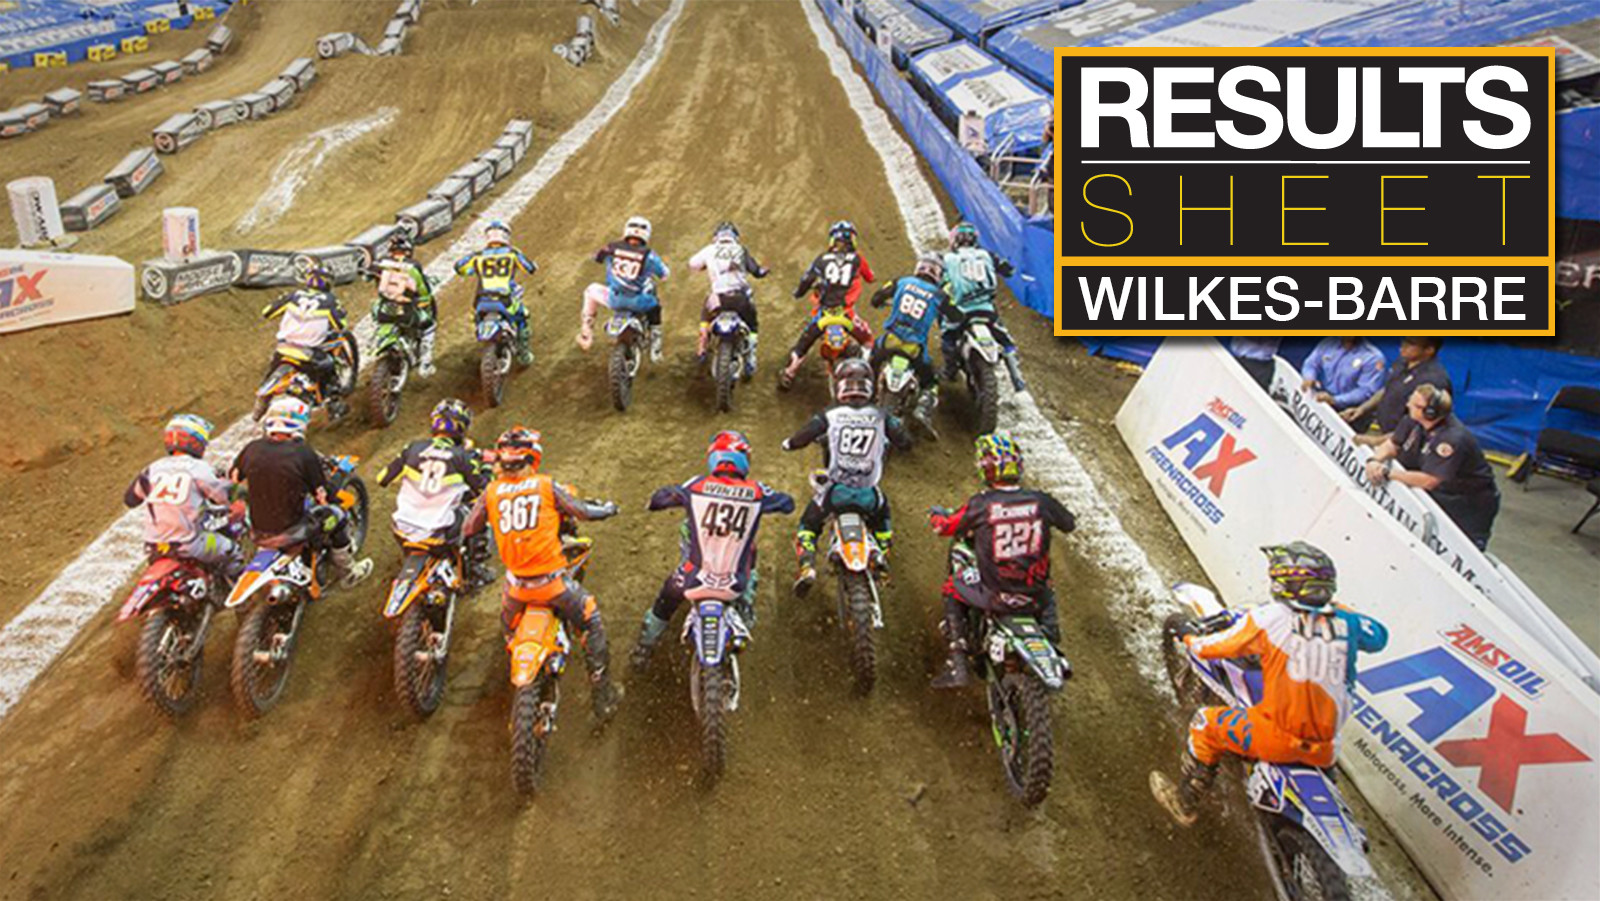 Results Sheet: 2018 Wilkes-Barre Arenacross